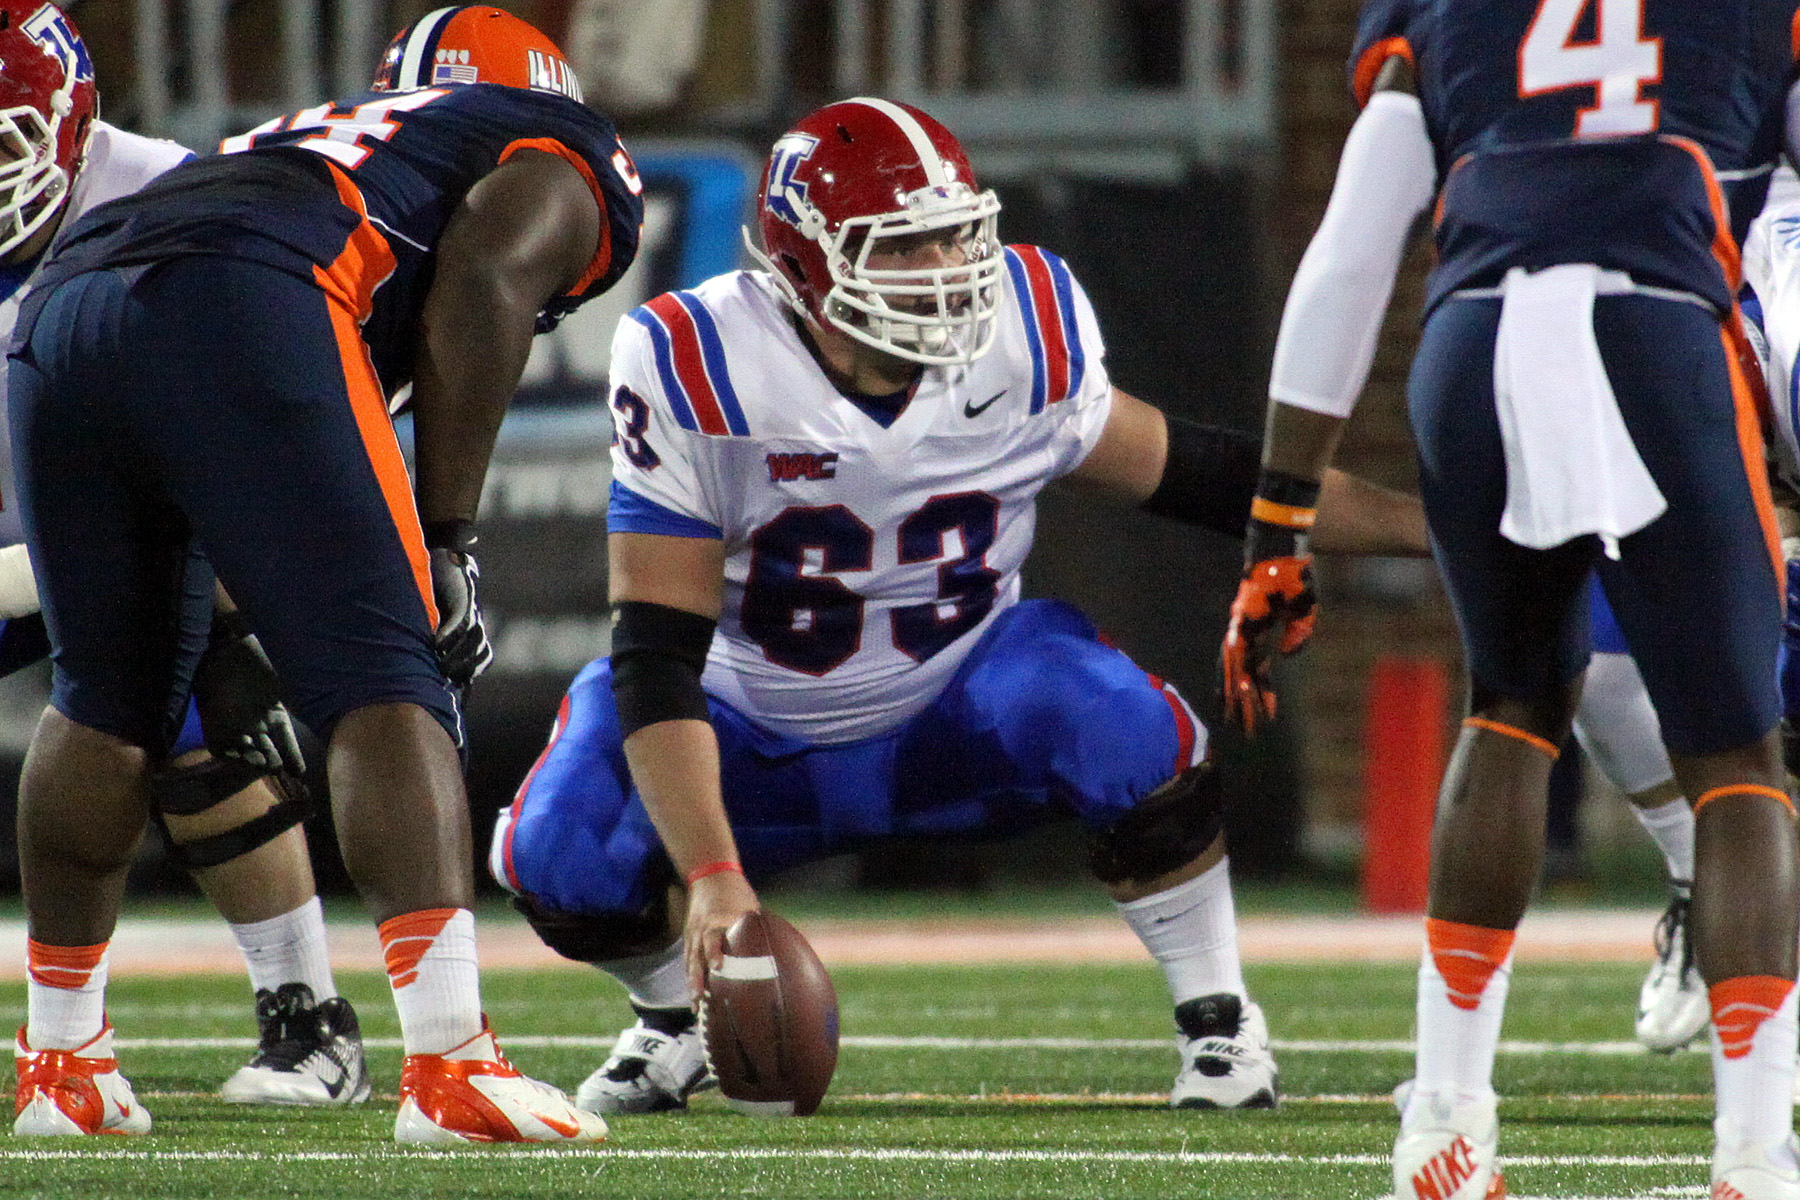 Stephen Warner directs traffic for Louisiana Tech in a win against Illinois. (Courtesy of La. Tech)